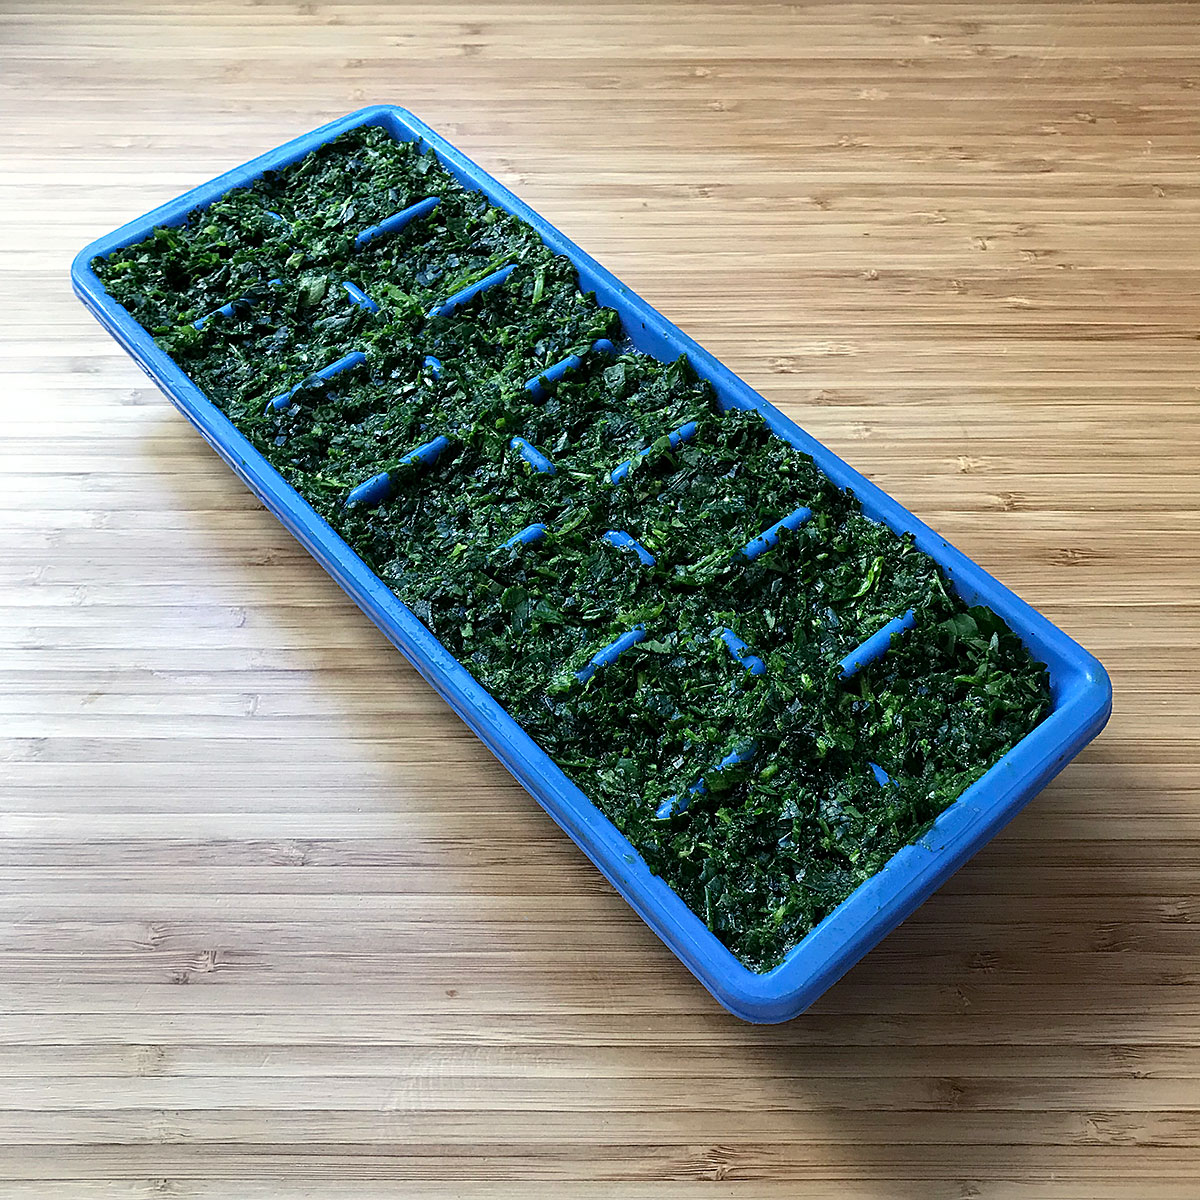 Tiny Trash Can how to freeze spinach